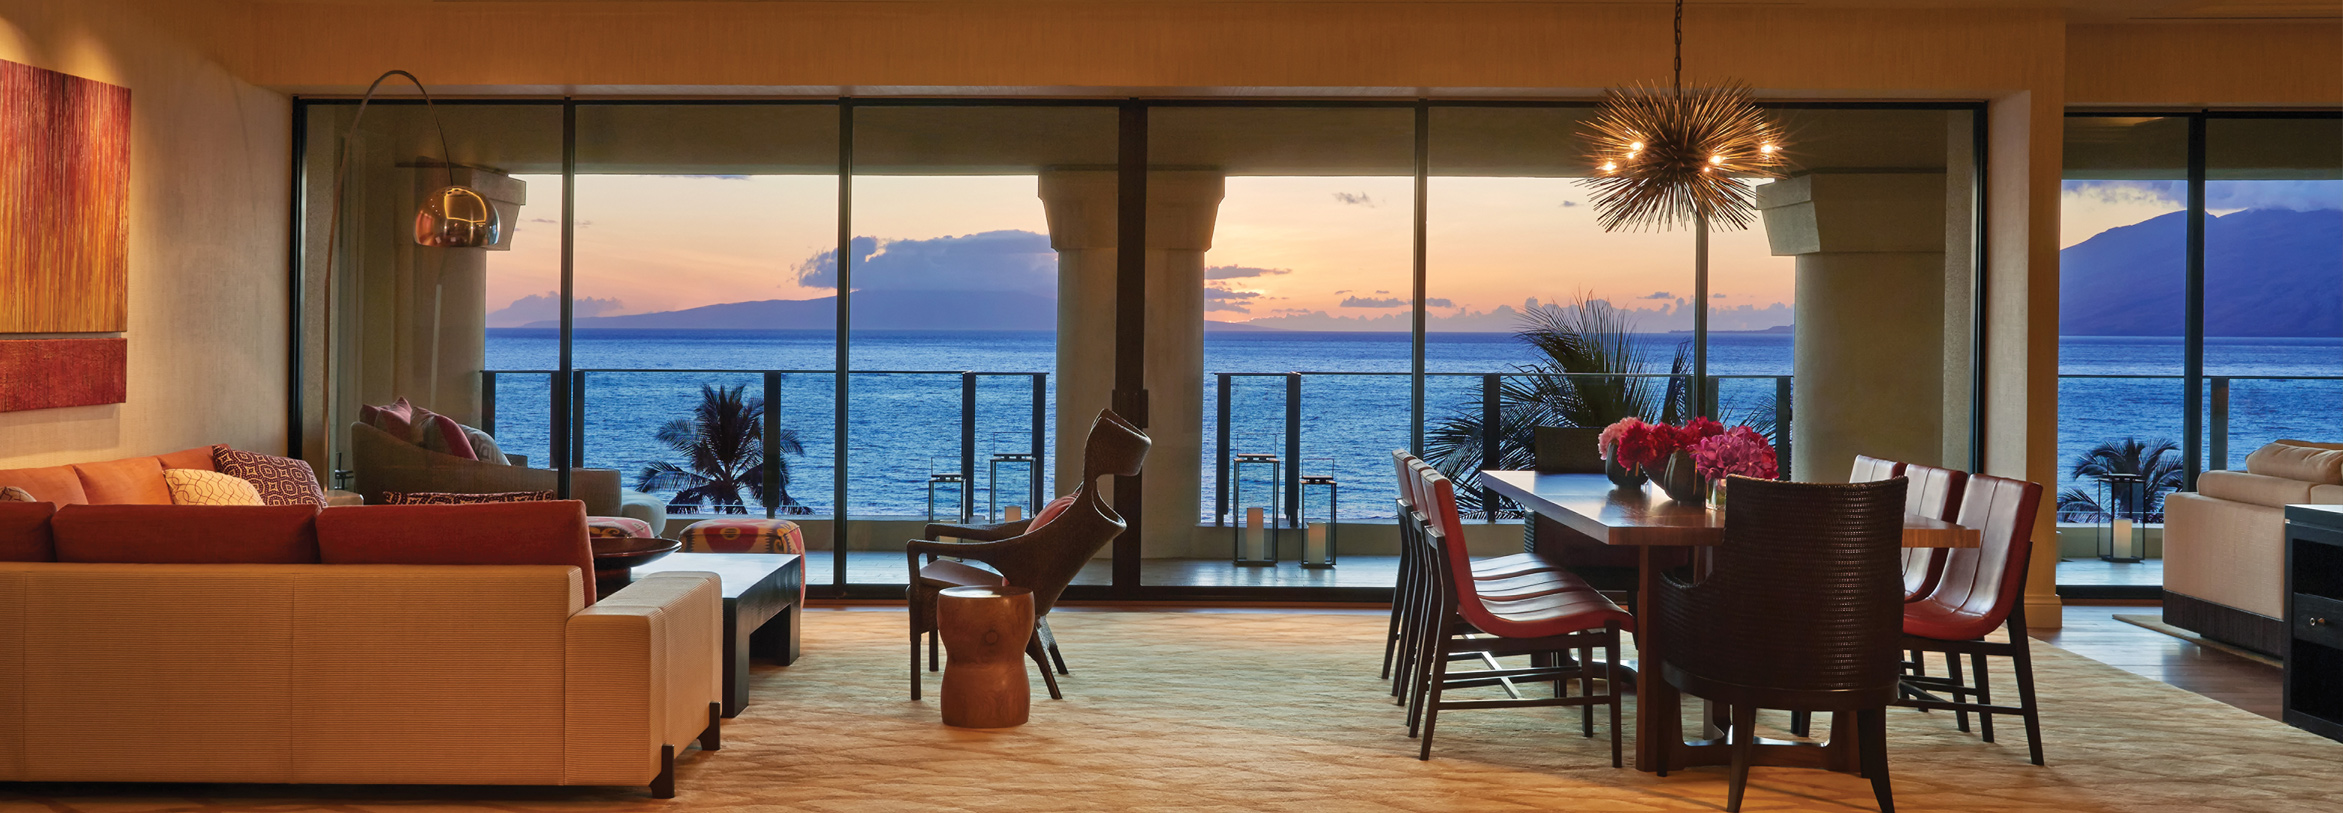 Four Seasons Maui - Luxury Hawaii Holiday - Ker & Downey